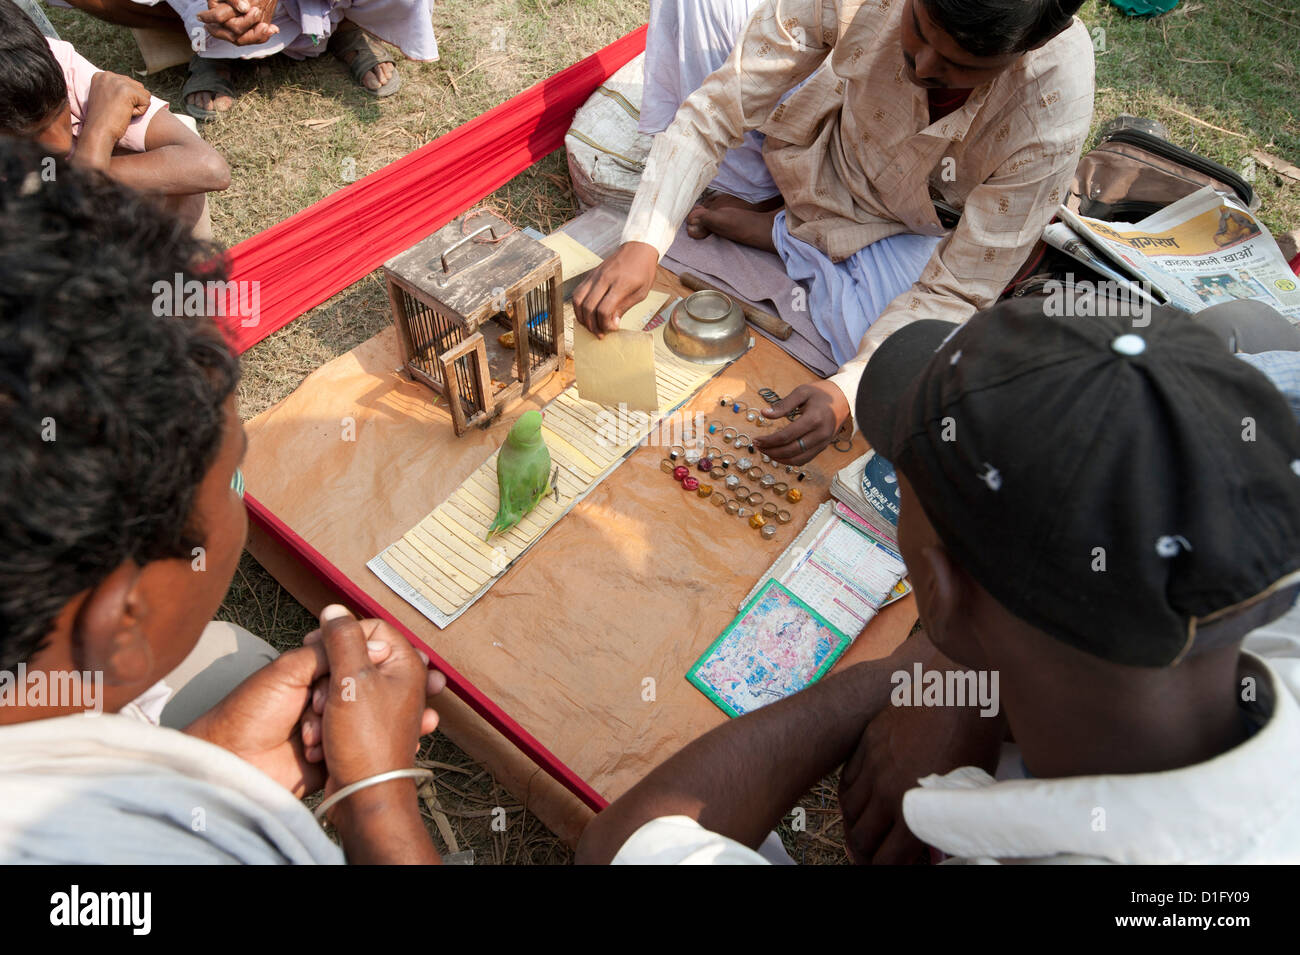 Fortune telling green parakeet being used to pick tarot cards at Sonepur Cattle Fair, Bihar, India, Asia - Stock Image